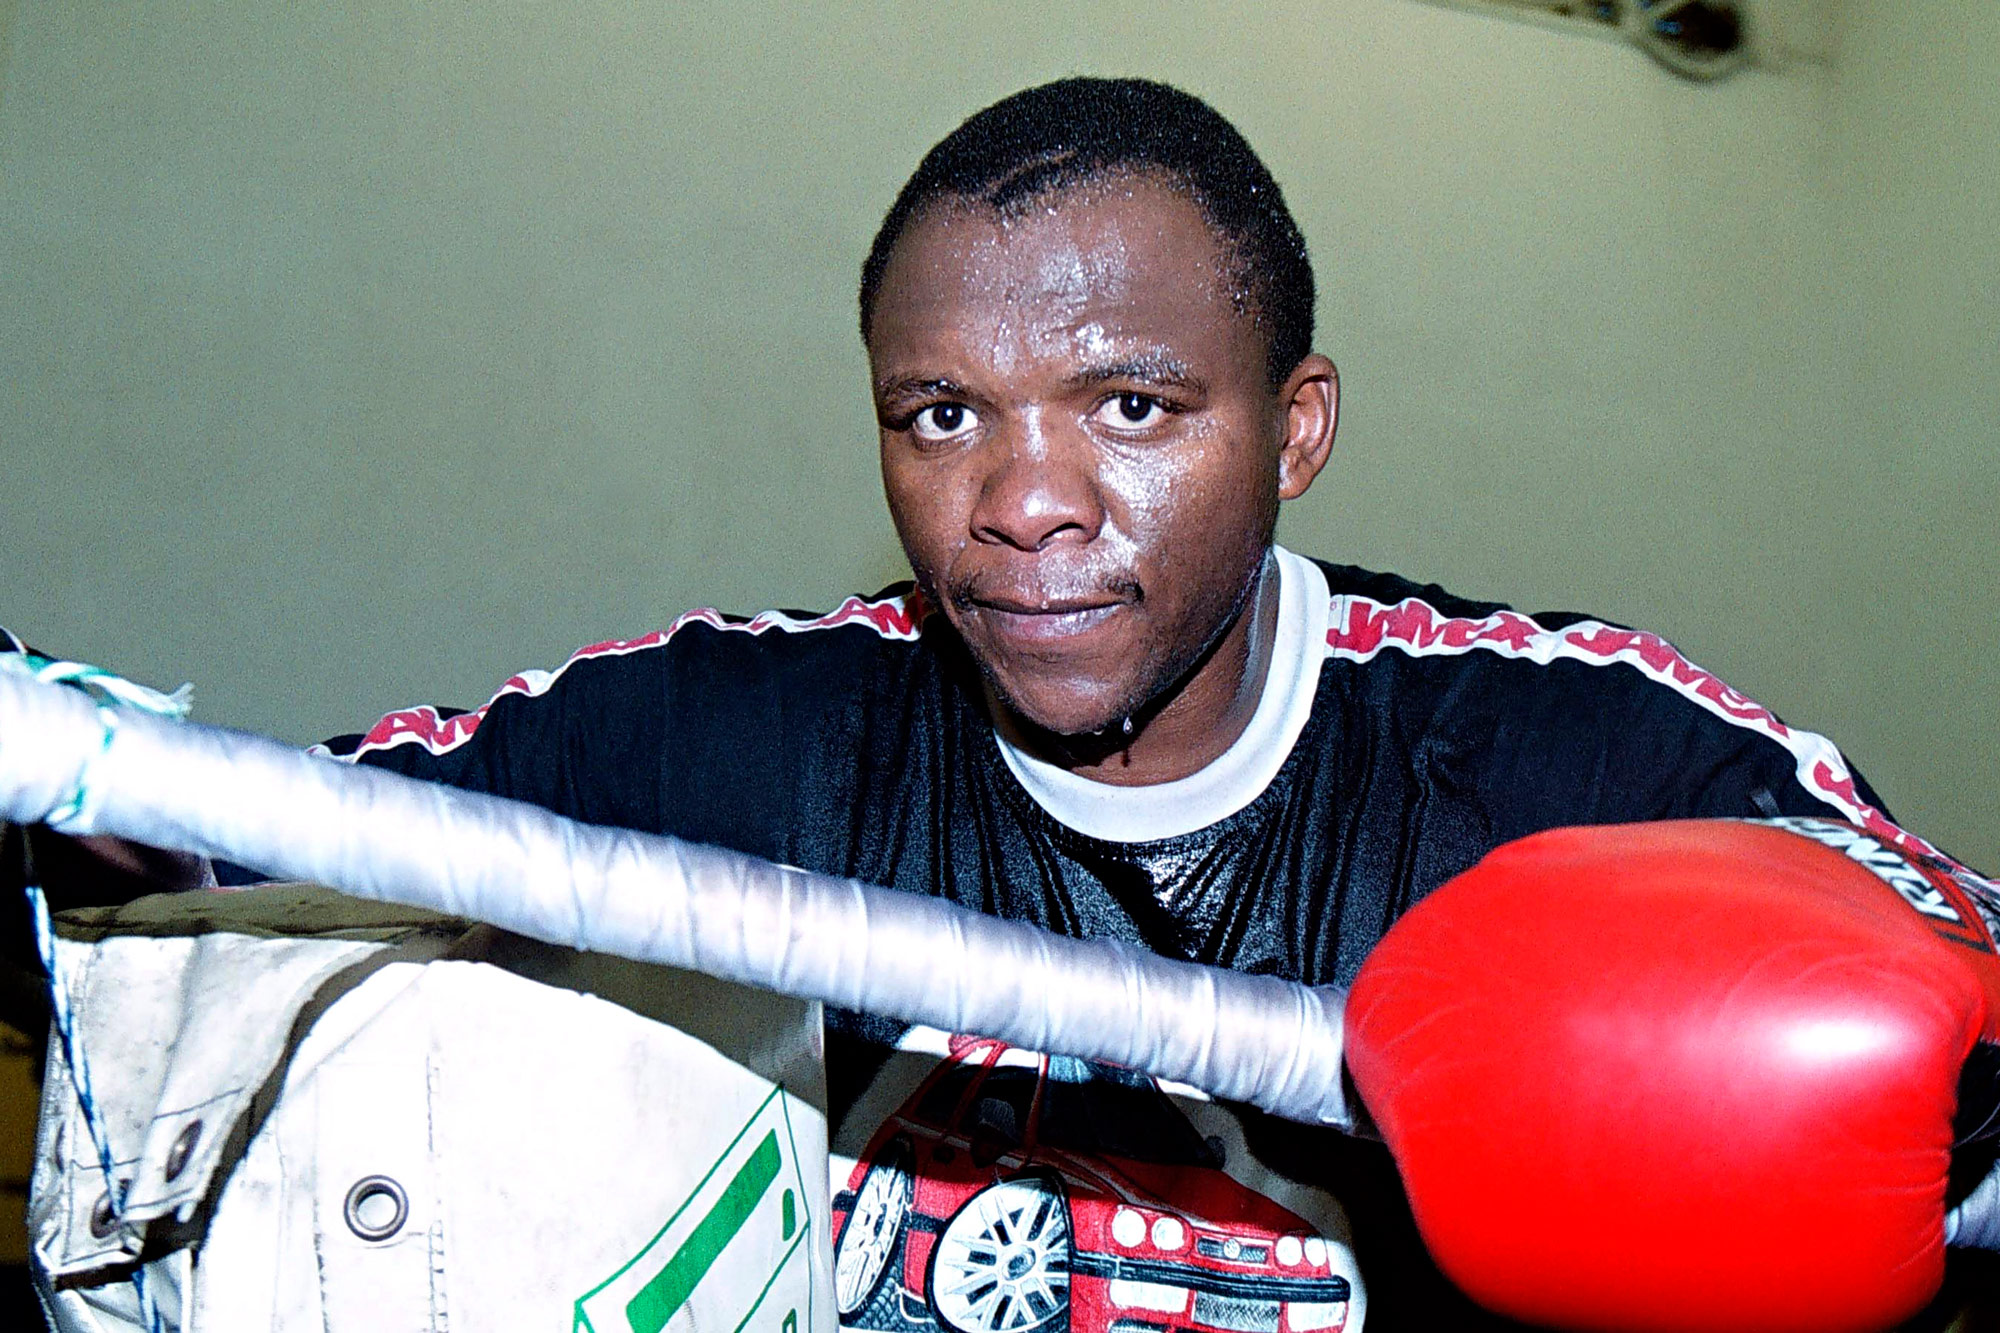 """8 March 2006: South African middleweight boxing legend Dingaan """"The Rose of Soweto"""" Thobela. (Photograph by Media24/ Gallo)"""